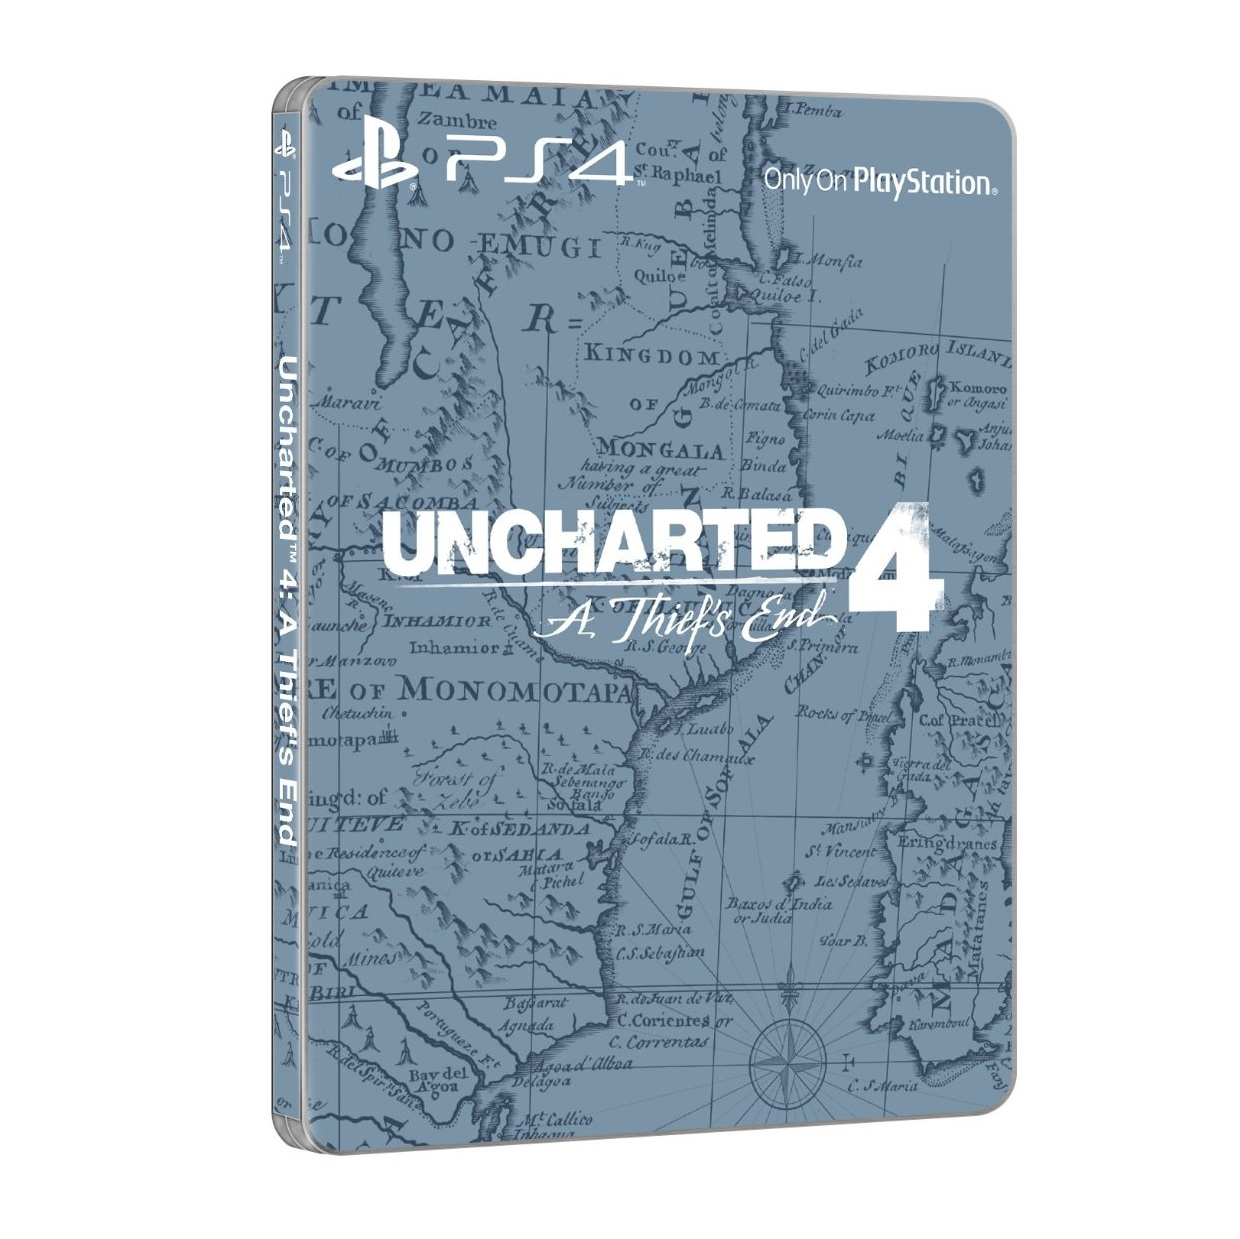 uncharted 4 steelbook edition